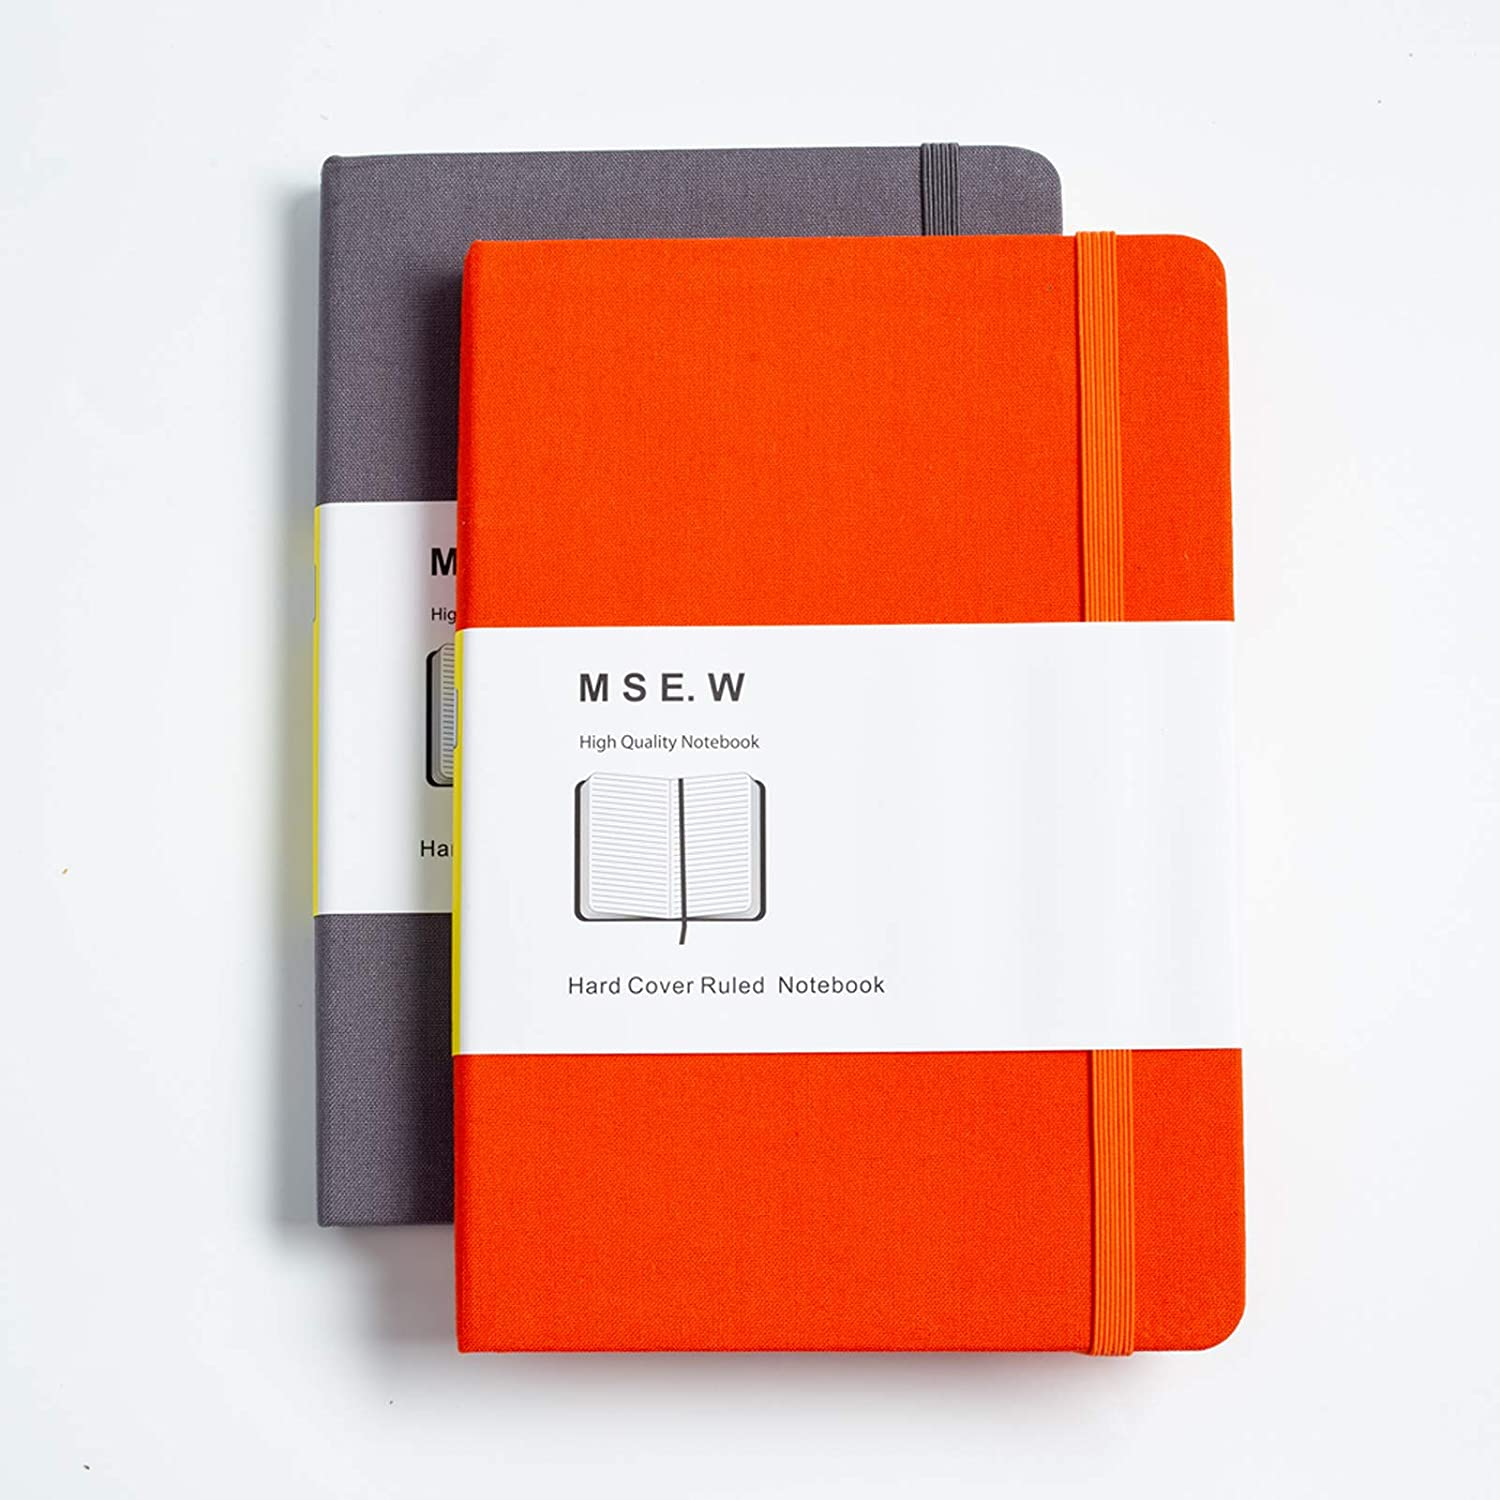 MSE.W Notebook Journal Lined 2 Pack, 5.7x8 Inches A5 Hardcover Travel Diary Set with Gift Box, Thick Paper and Lay Flat for Easy Writing, with Inner Pocket and Elastic Closure (Orange, Gray)